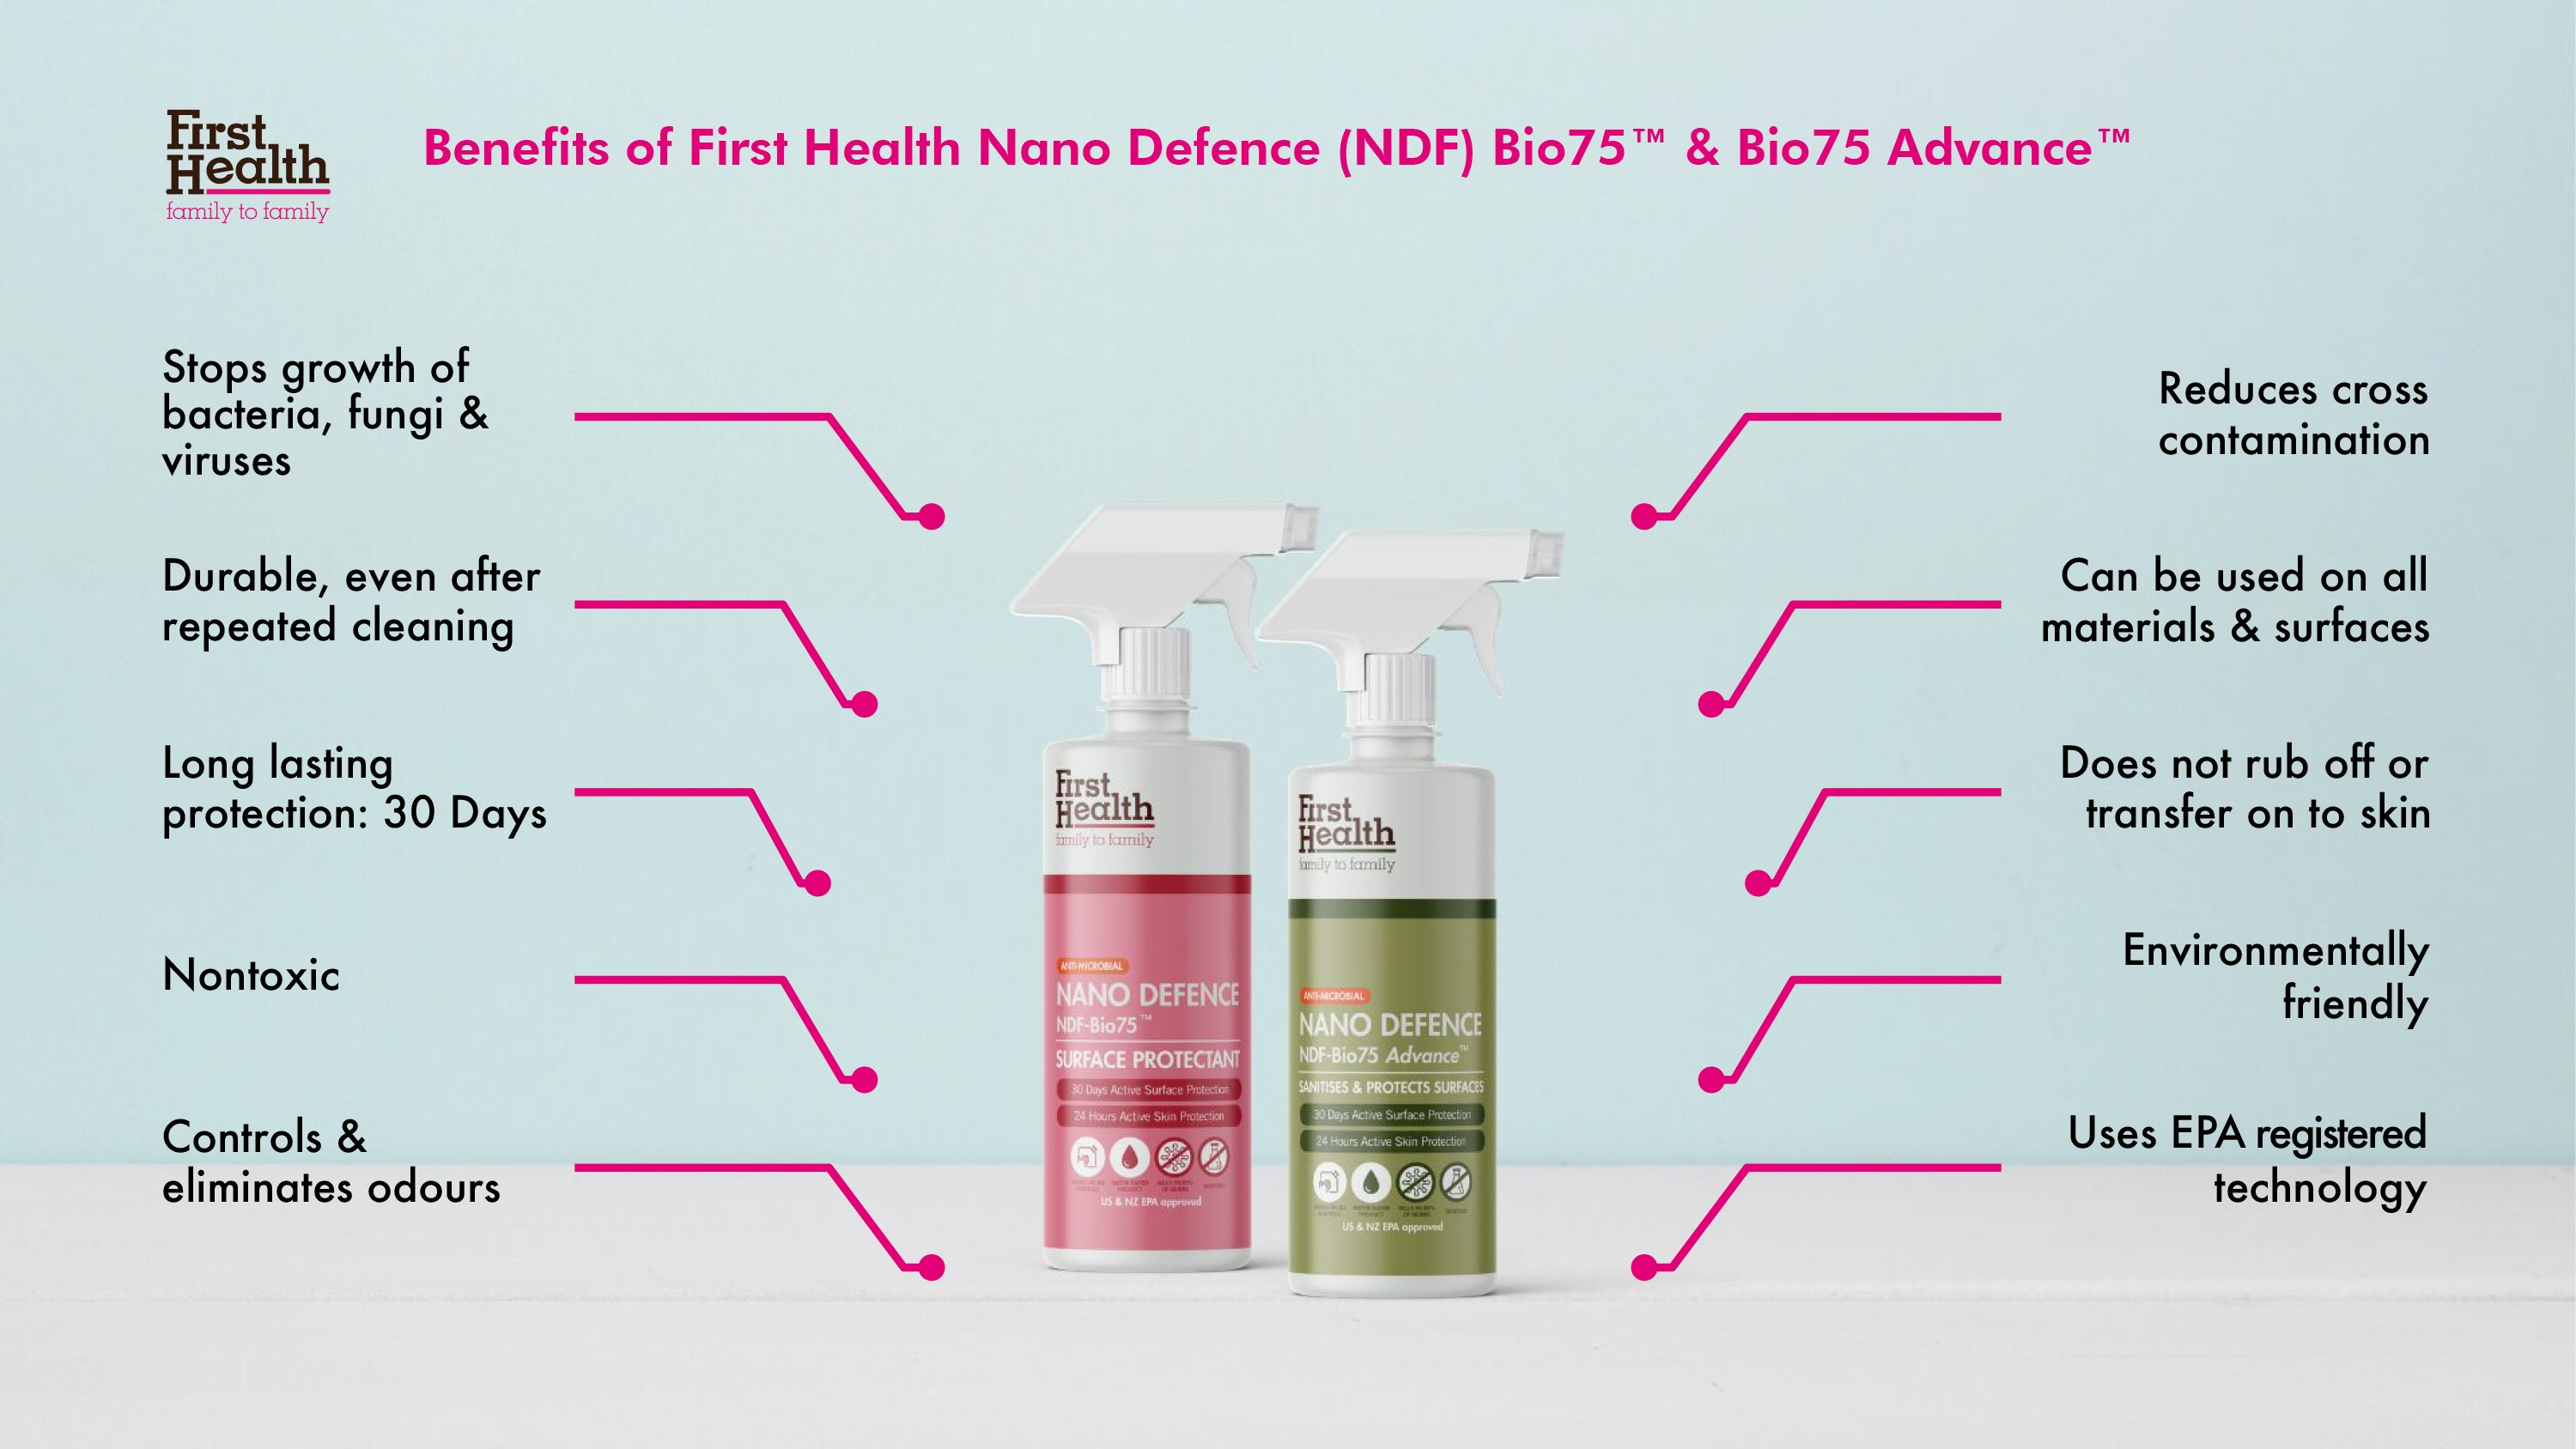 Benefits of First Health Nano Defence (NDF) Bio75TM and Bio75 AdvanceTM for homes and workplaces